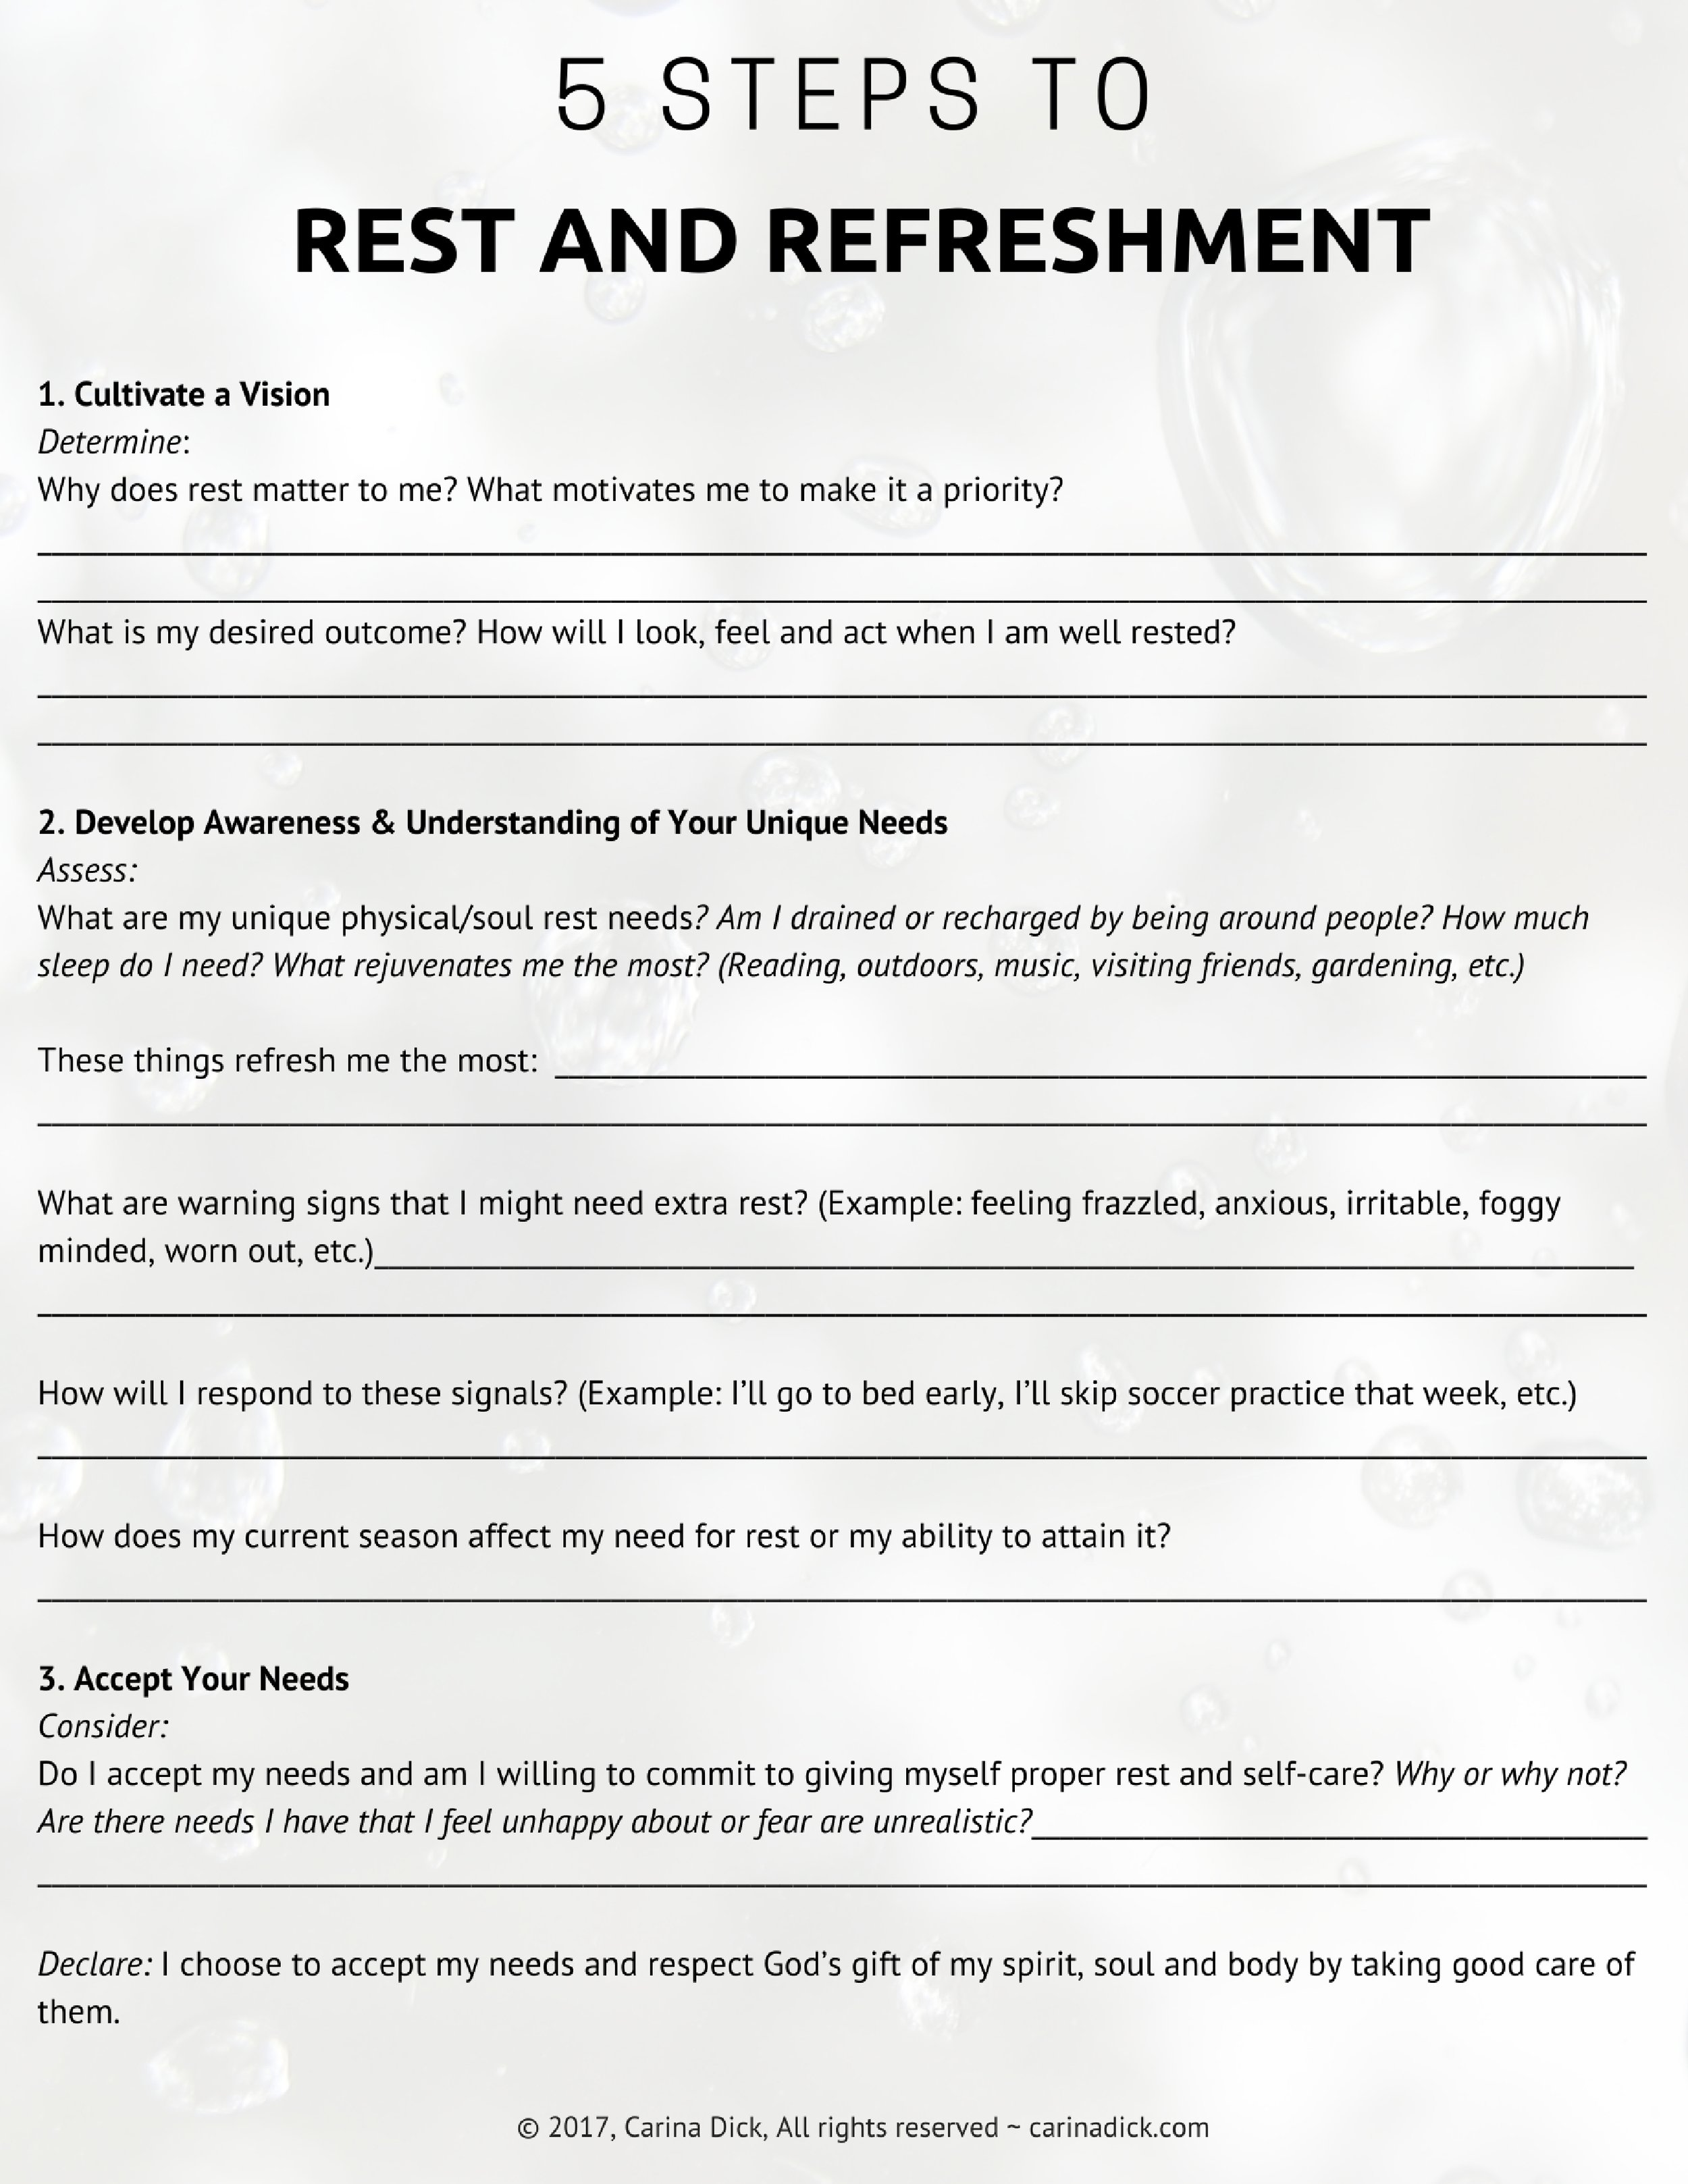 5 steps to rest image.jpg